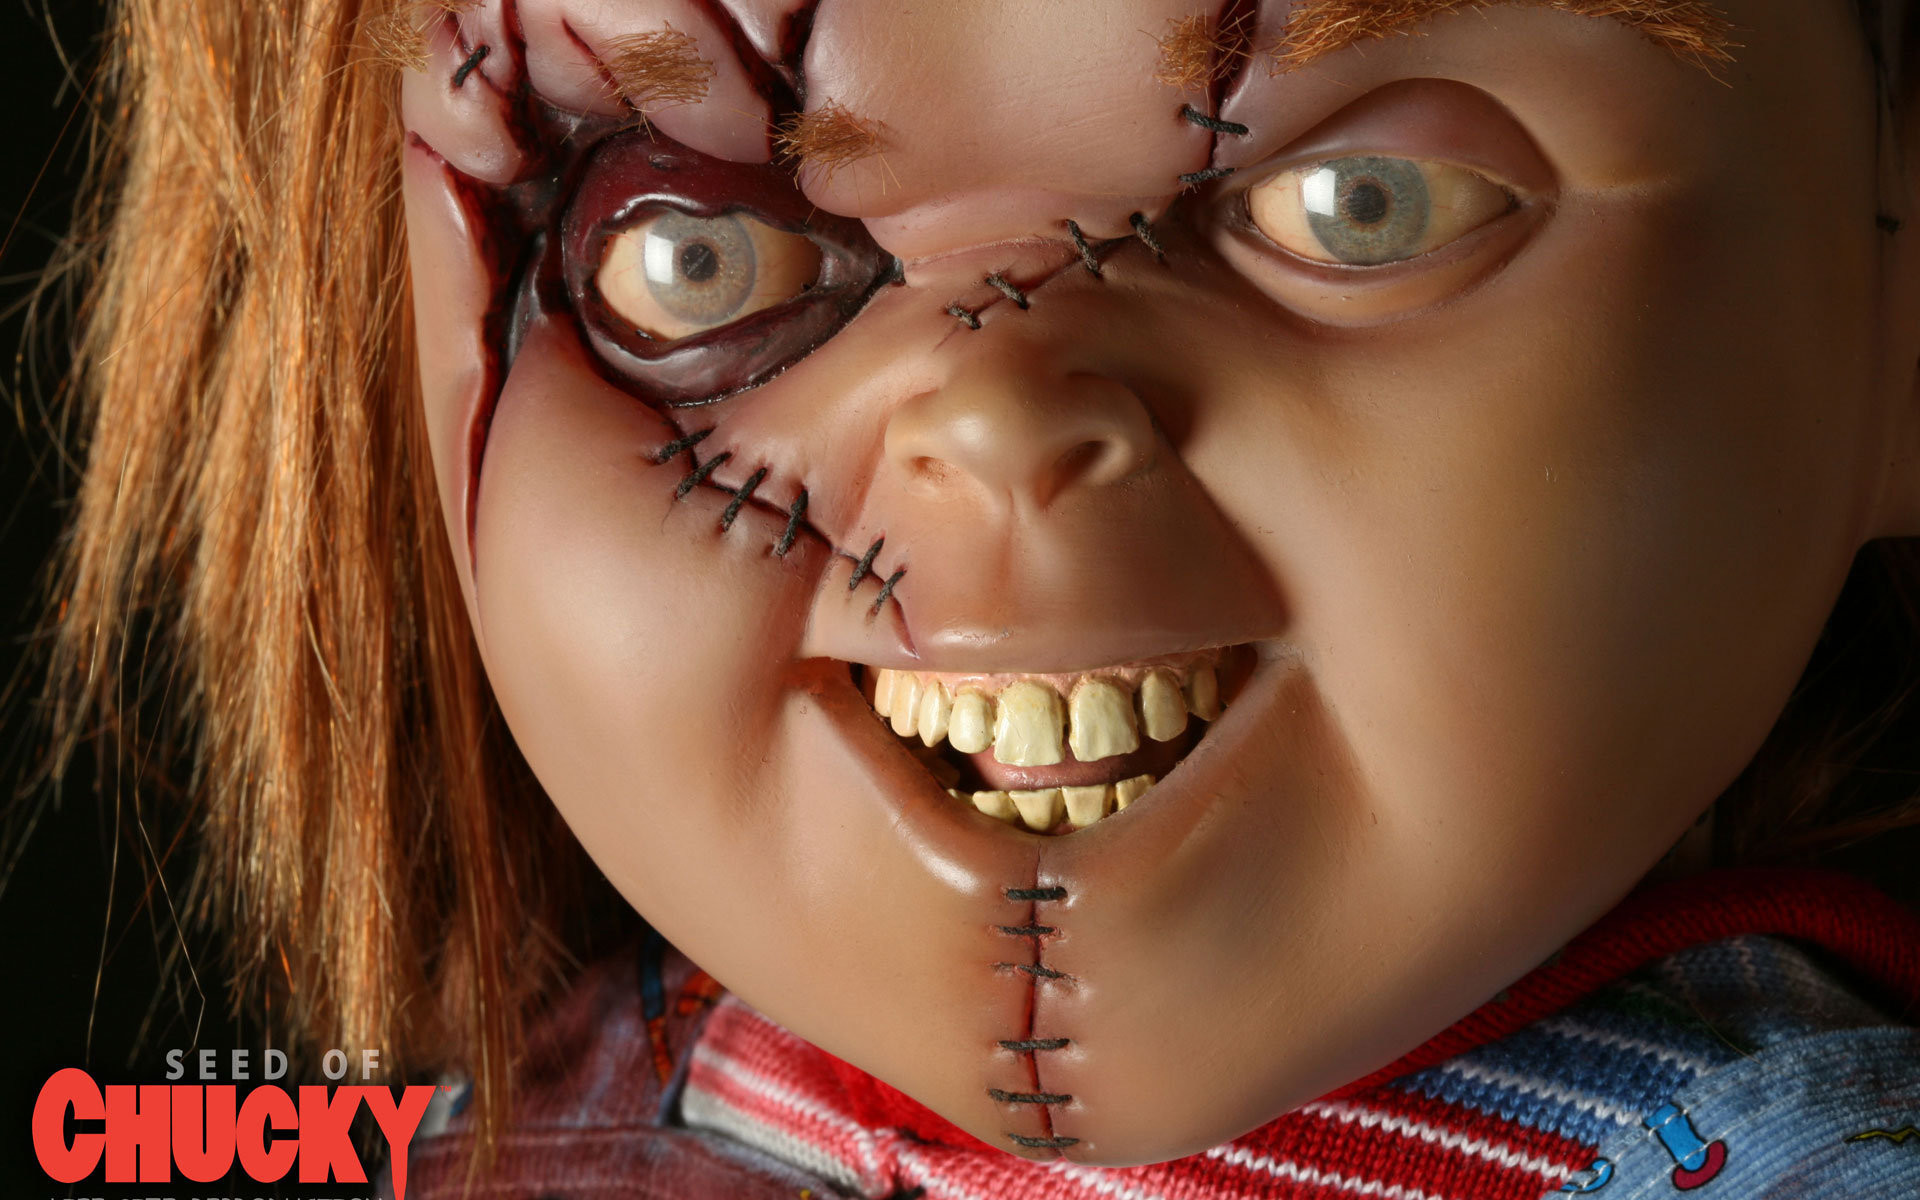 Seed of chucky wallpaper 83 images 1920x1200 seed of chucky seed of chucky wallpaper 29023592 fanpop voltagebd Choice Image